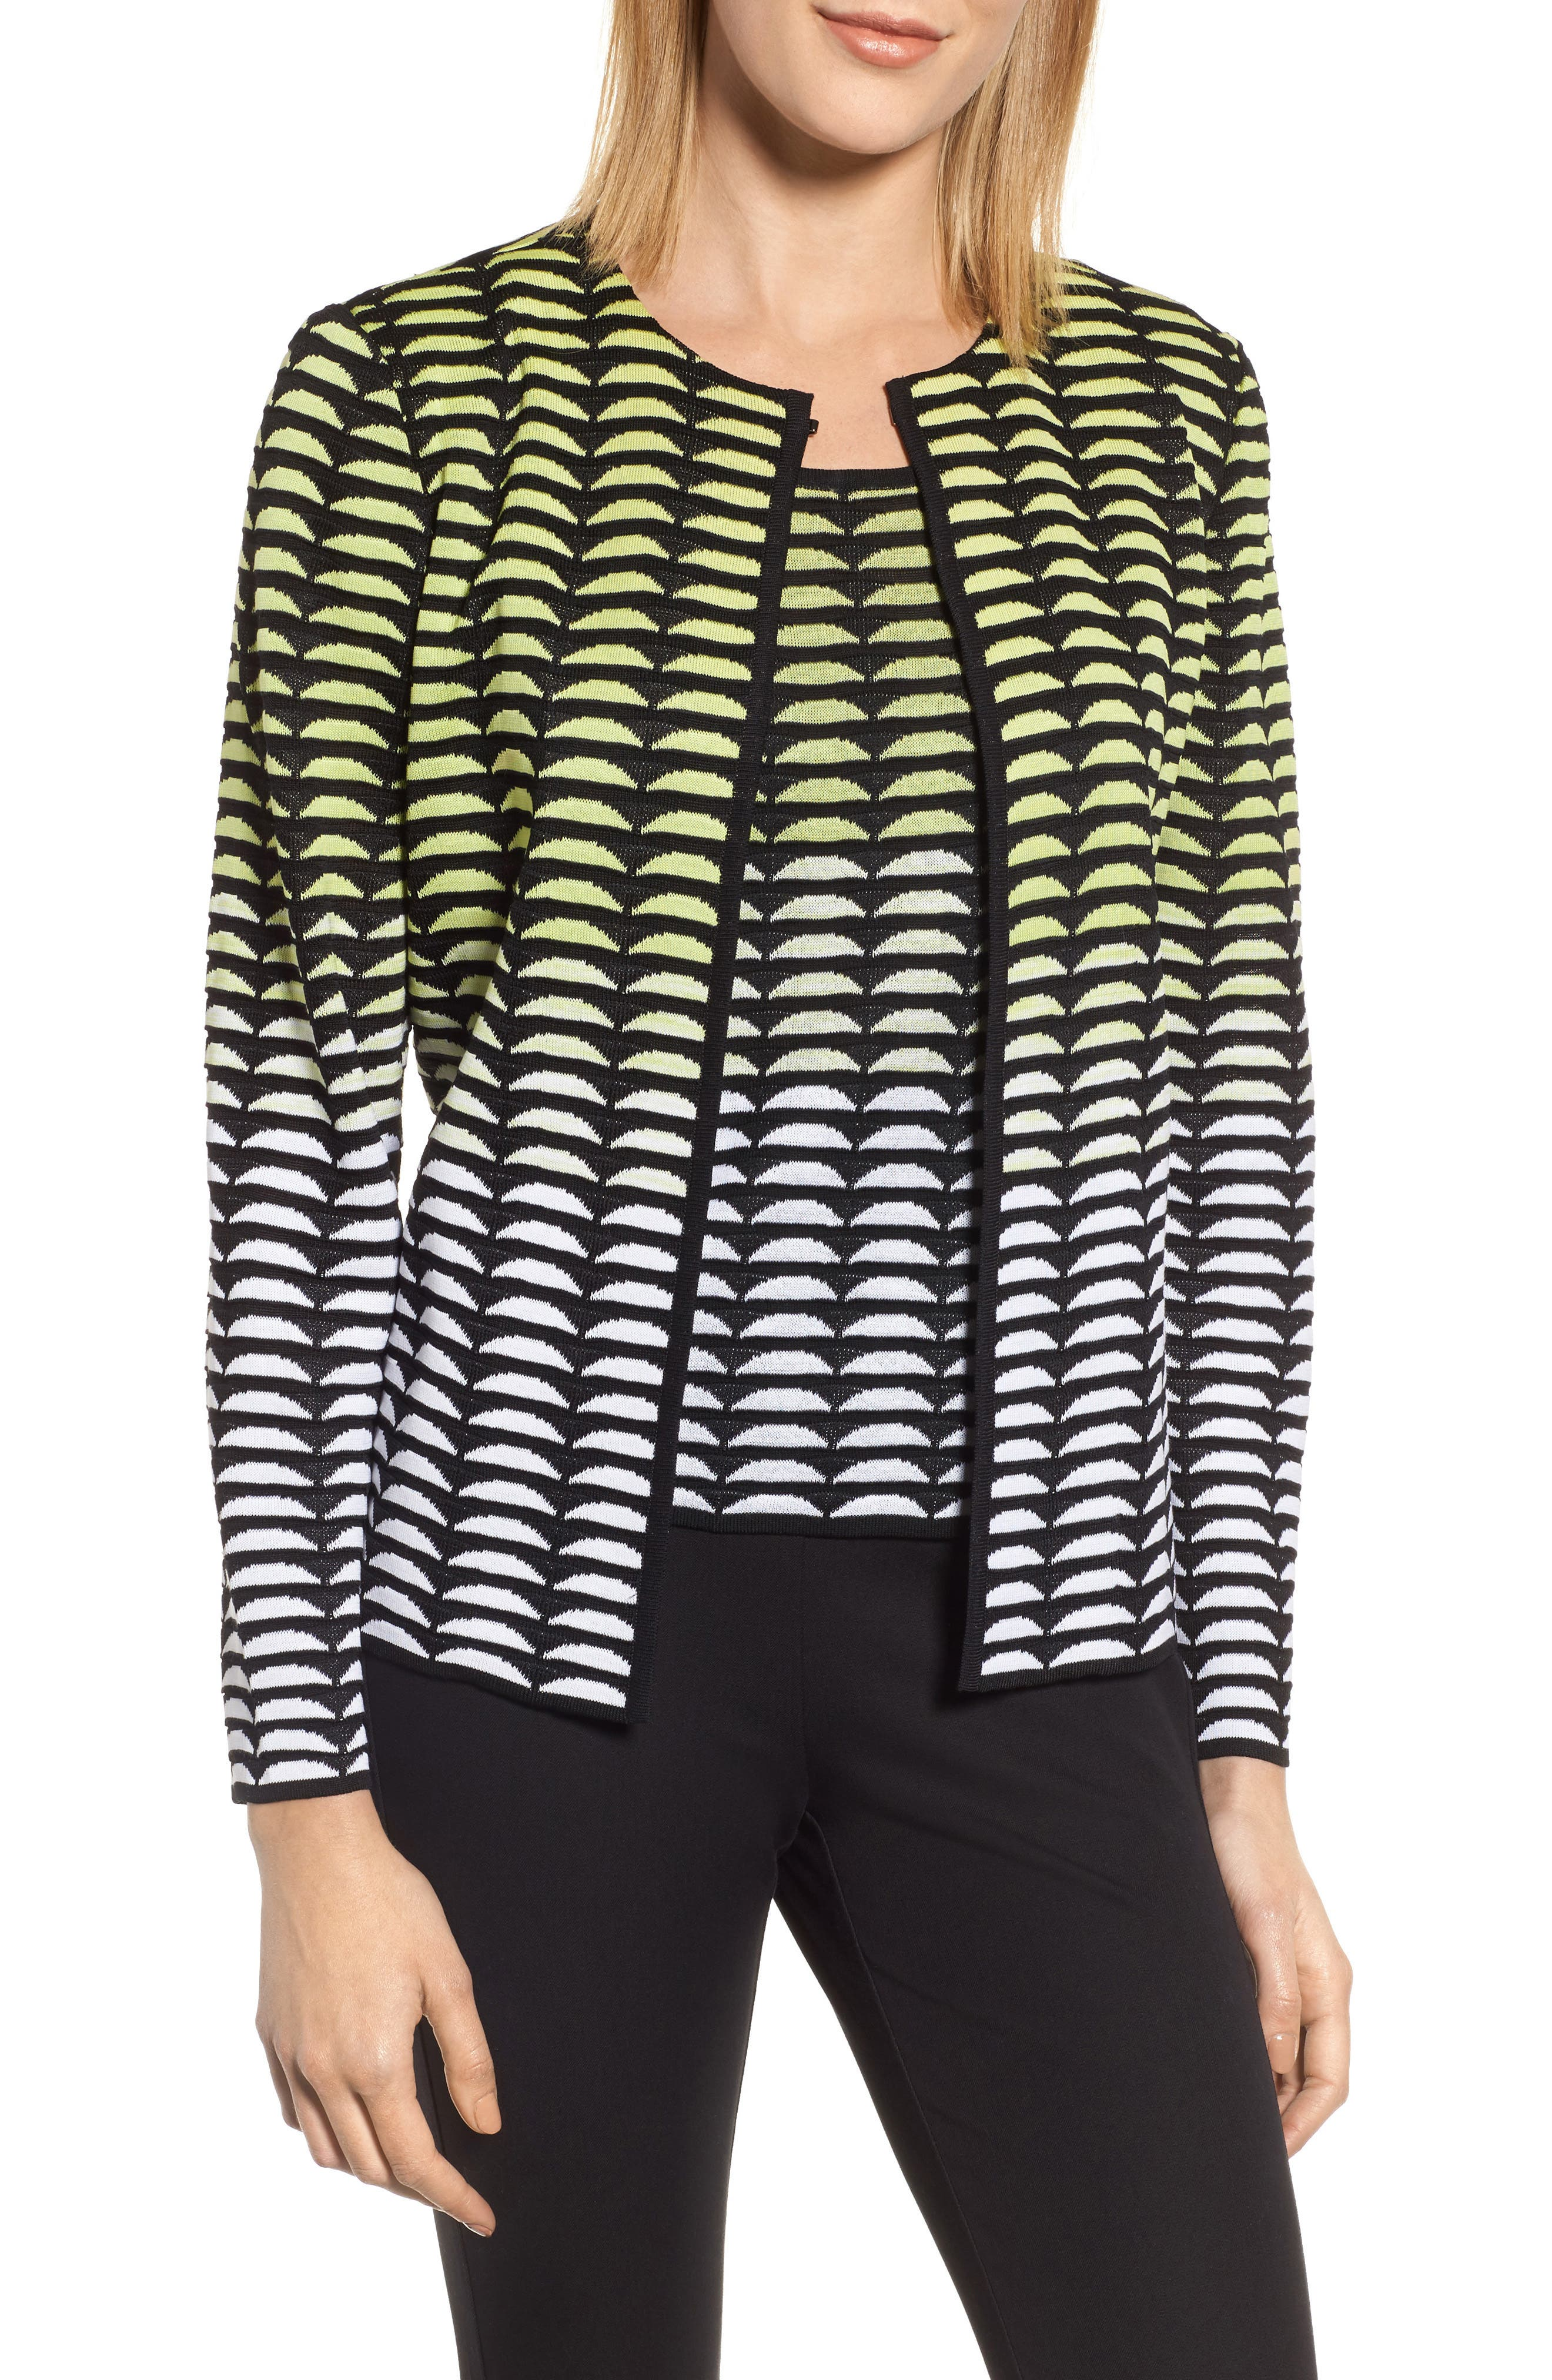 Ombré Jacquard Knit Jacket,                         Main,                         color, Aurora/ Black/ White